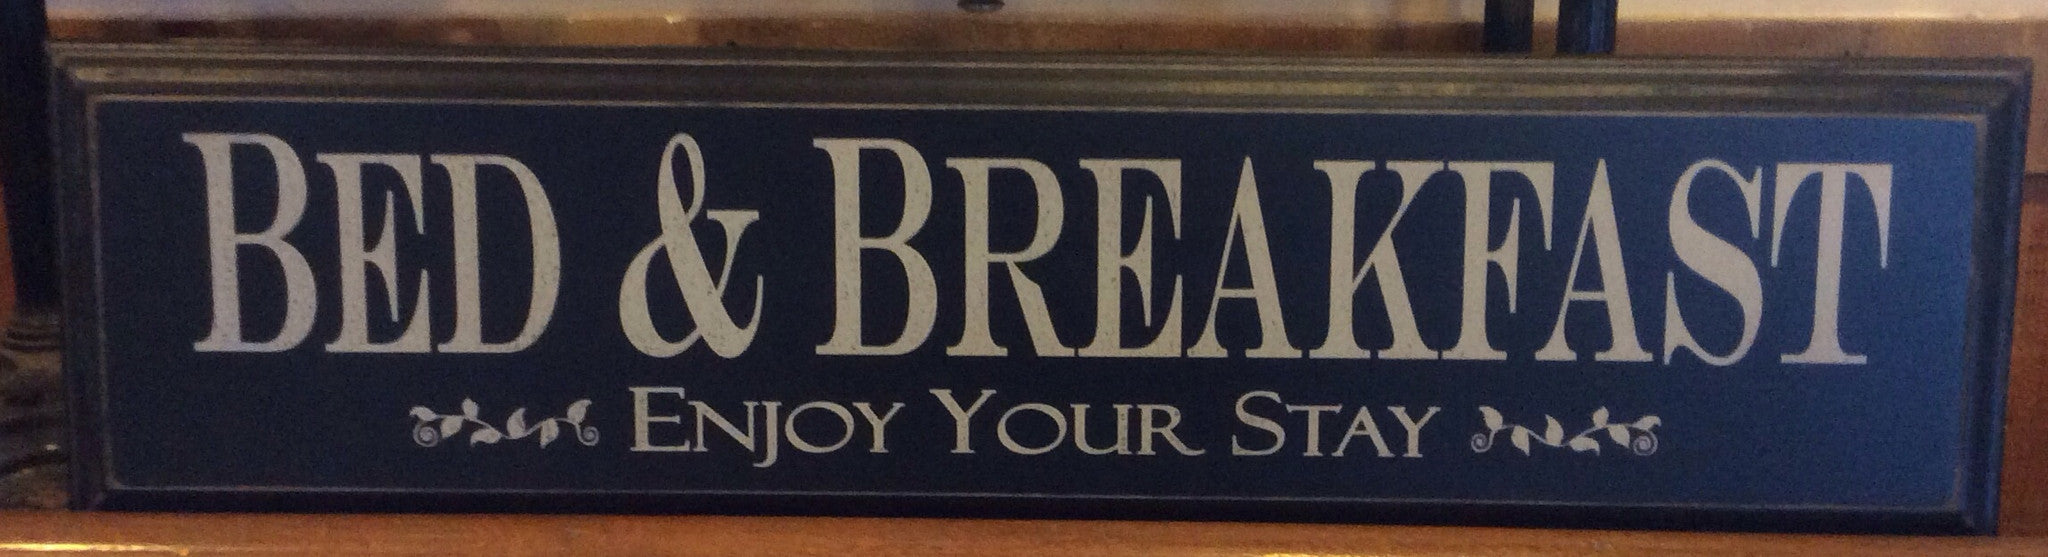 "Bed & Breakfast- Enjoy Your Stay- Painted Wood Sign with Routered Edge- 9 1/4"" x 35 3/4""- Black with Cream Letters"